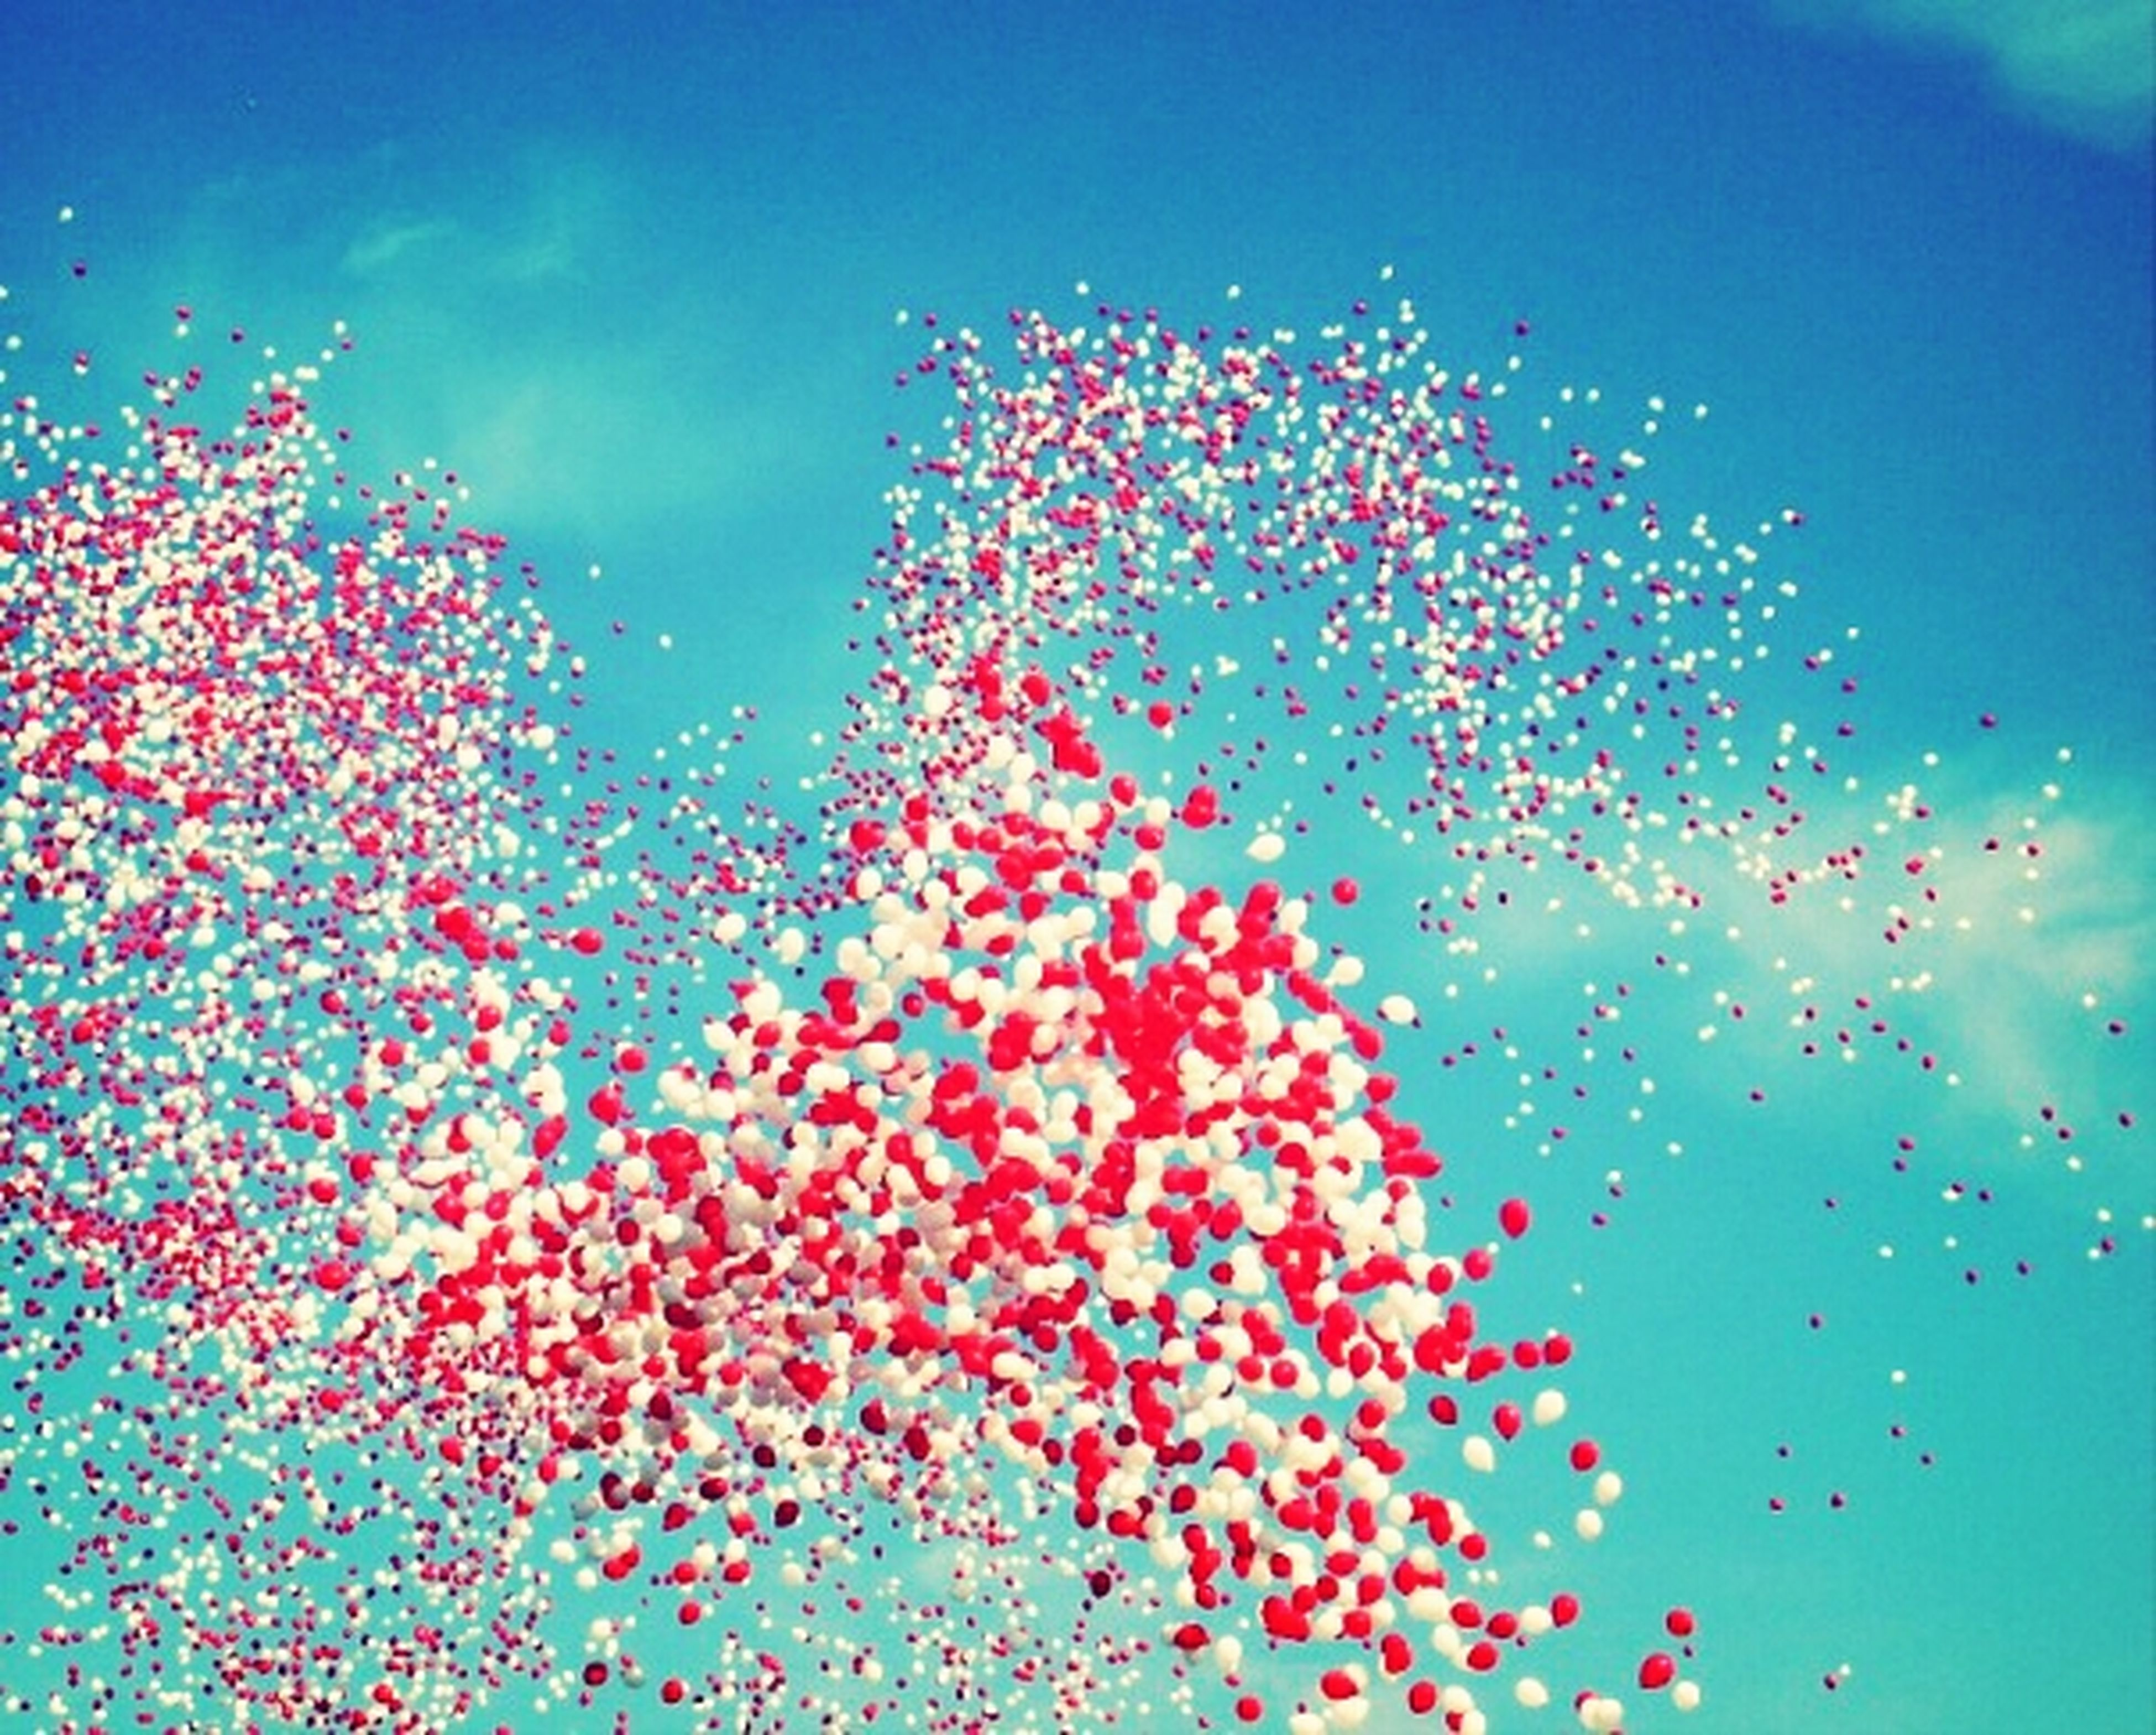 blue, low angle view, sky, celebration, red, clear sky, outdoors, water, fragility, nature, multi colored, no people, illuminated, pink color, day, freshness, close-up, motion, focus on foreground, beauty in nature